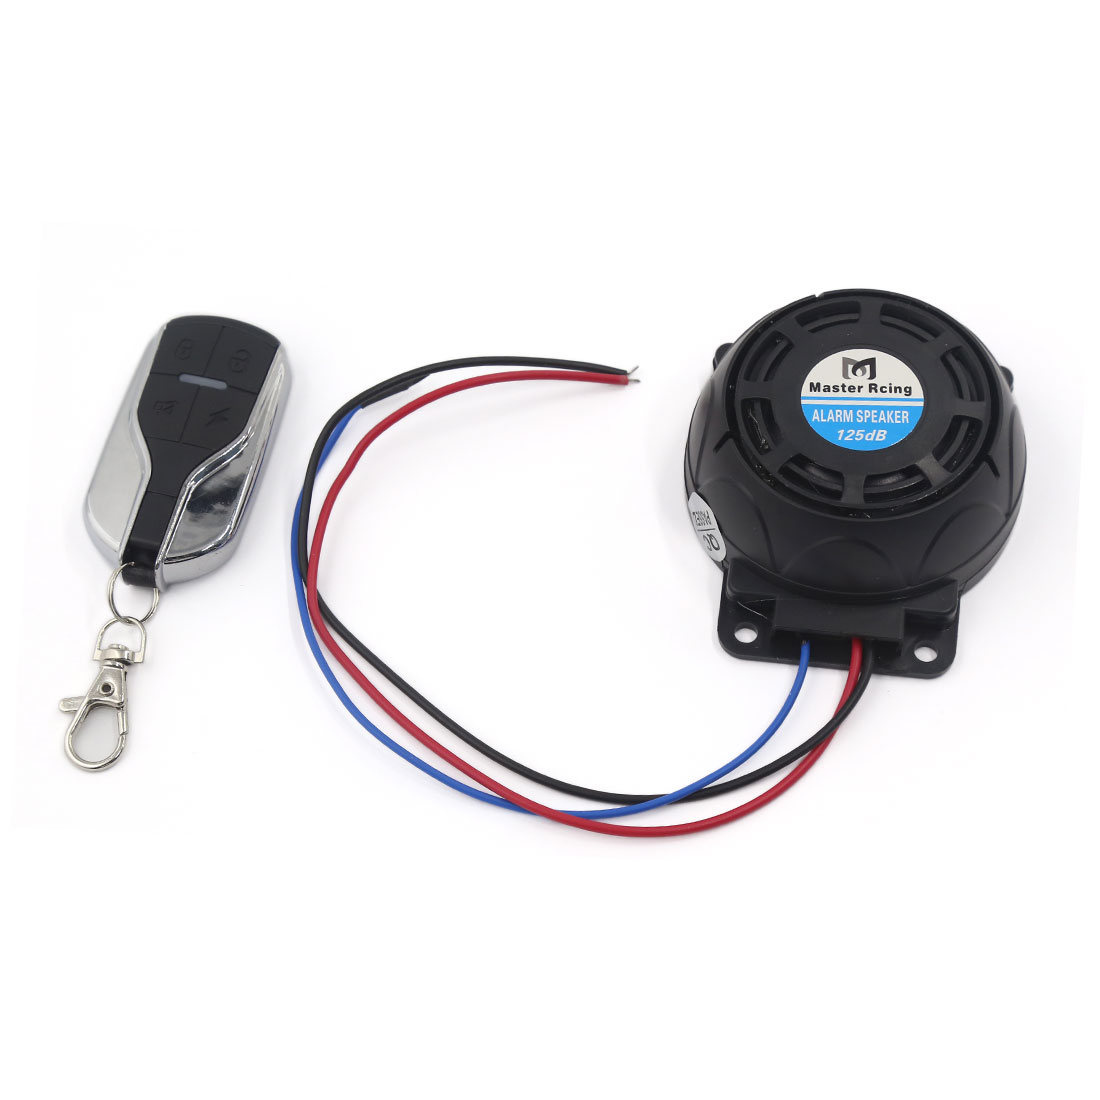 DC 12V Motorcycle Anti-theft Security Alarm Systems Remote Control Engine Start